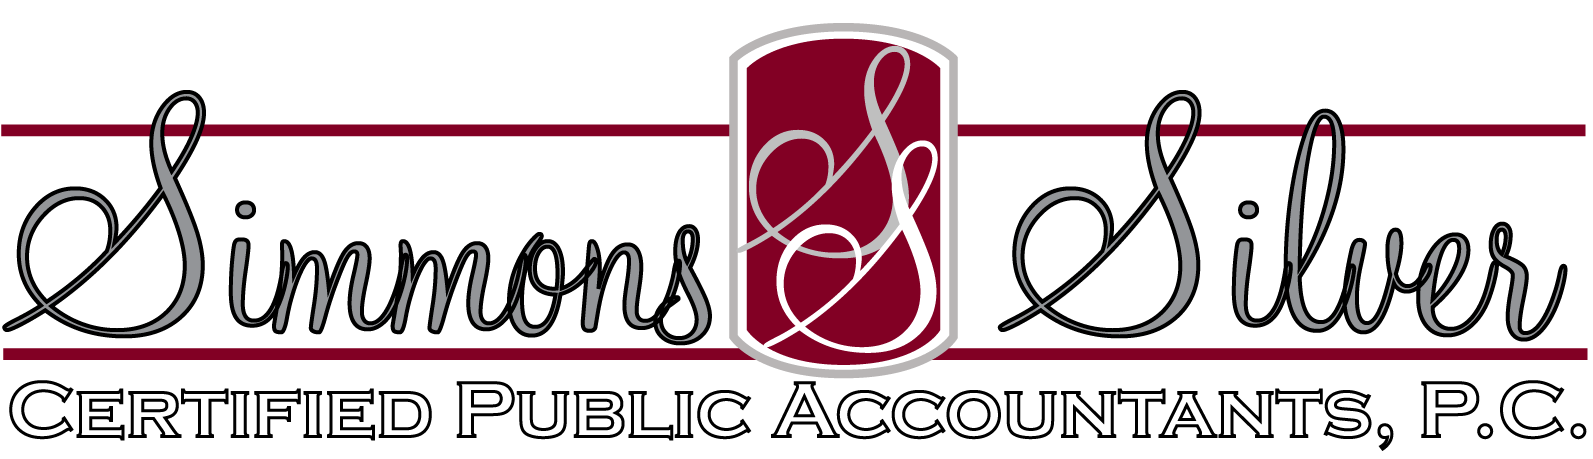 Sturgis, SD Accounting Firm | Search Page | Simmons and Silver CPA, PC